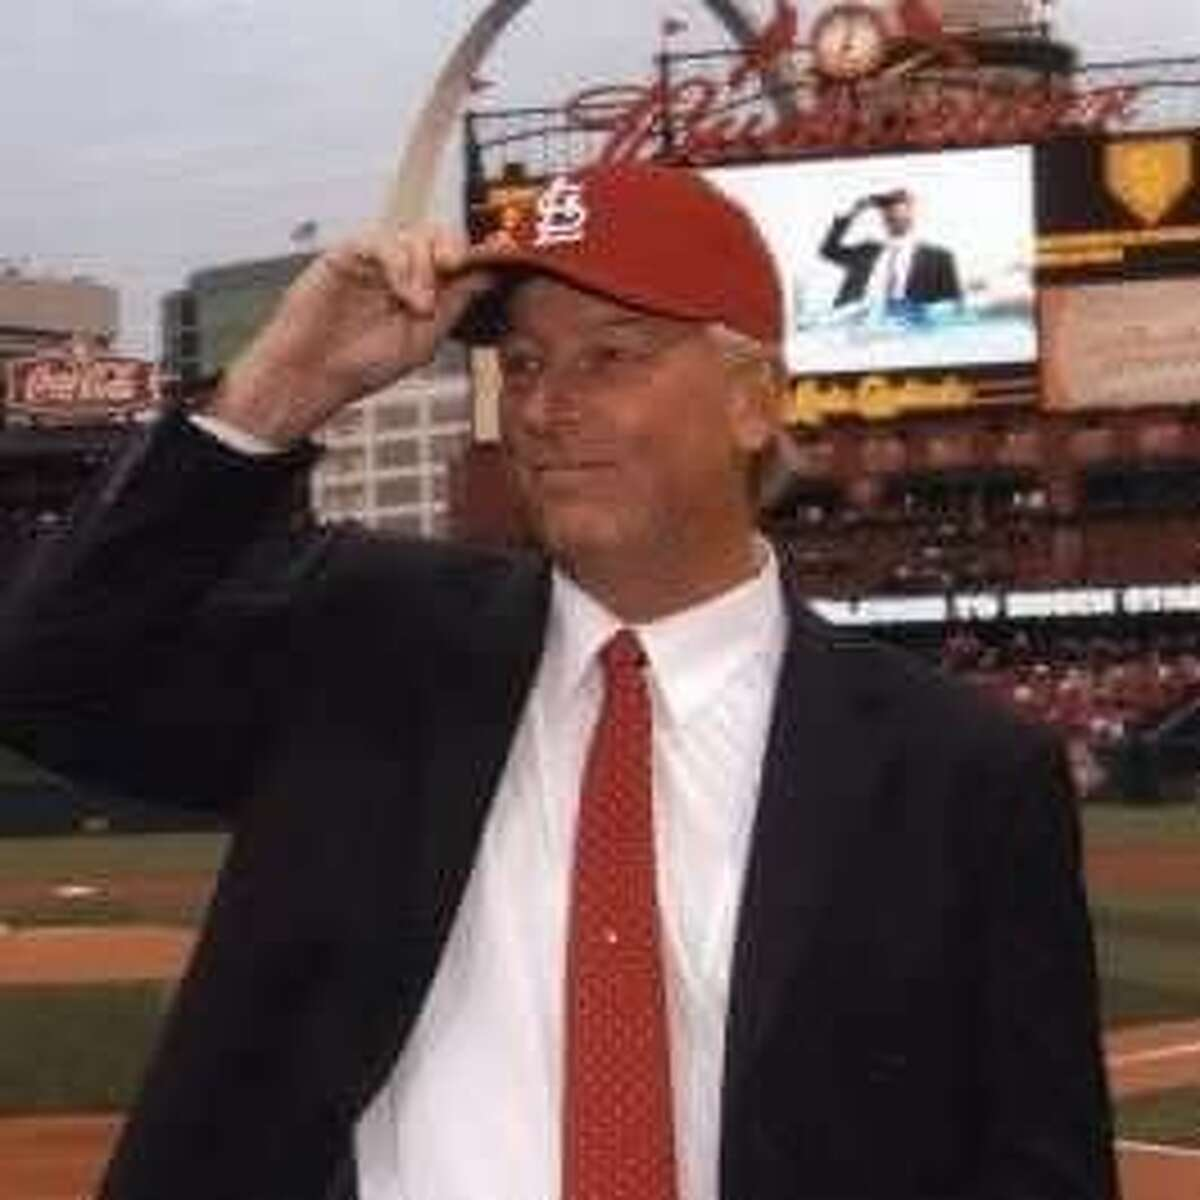 Glens Falls native and former major league pitcher Dave La Point. (Courtesy photo)